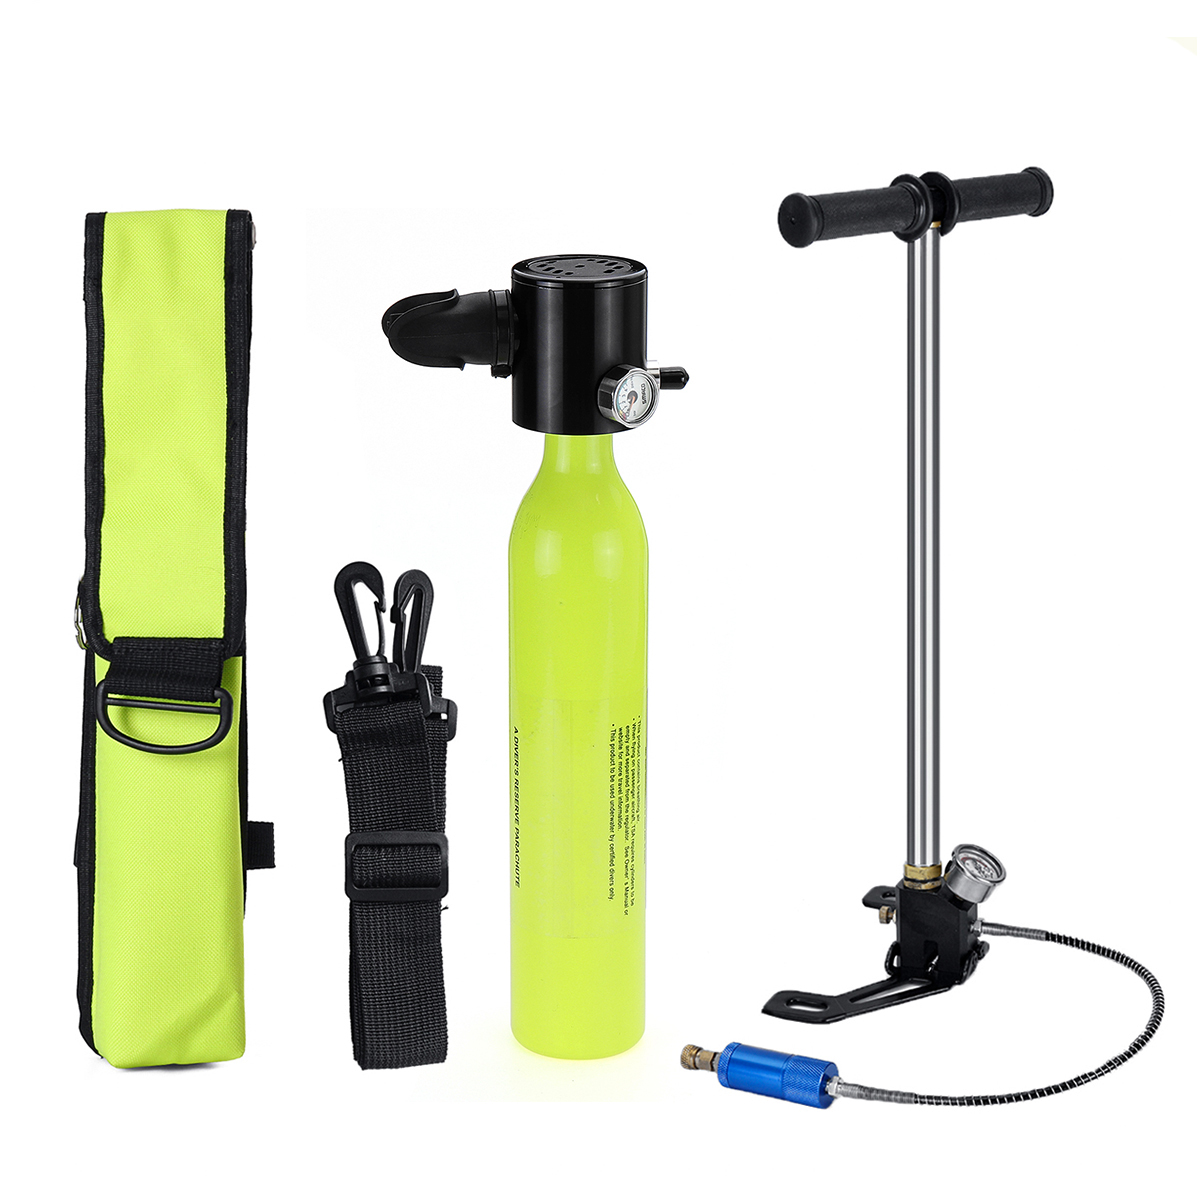 0.5L Portable Mini Scuba Oxygen Cylinder Air Tanks Diving Equipment For Snorkeling Underwater Breathing Pump Bag for 7-10minute(China)